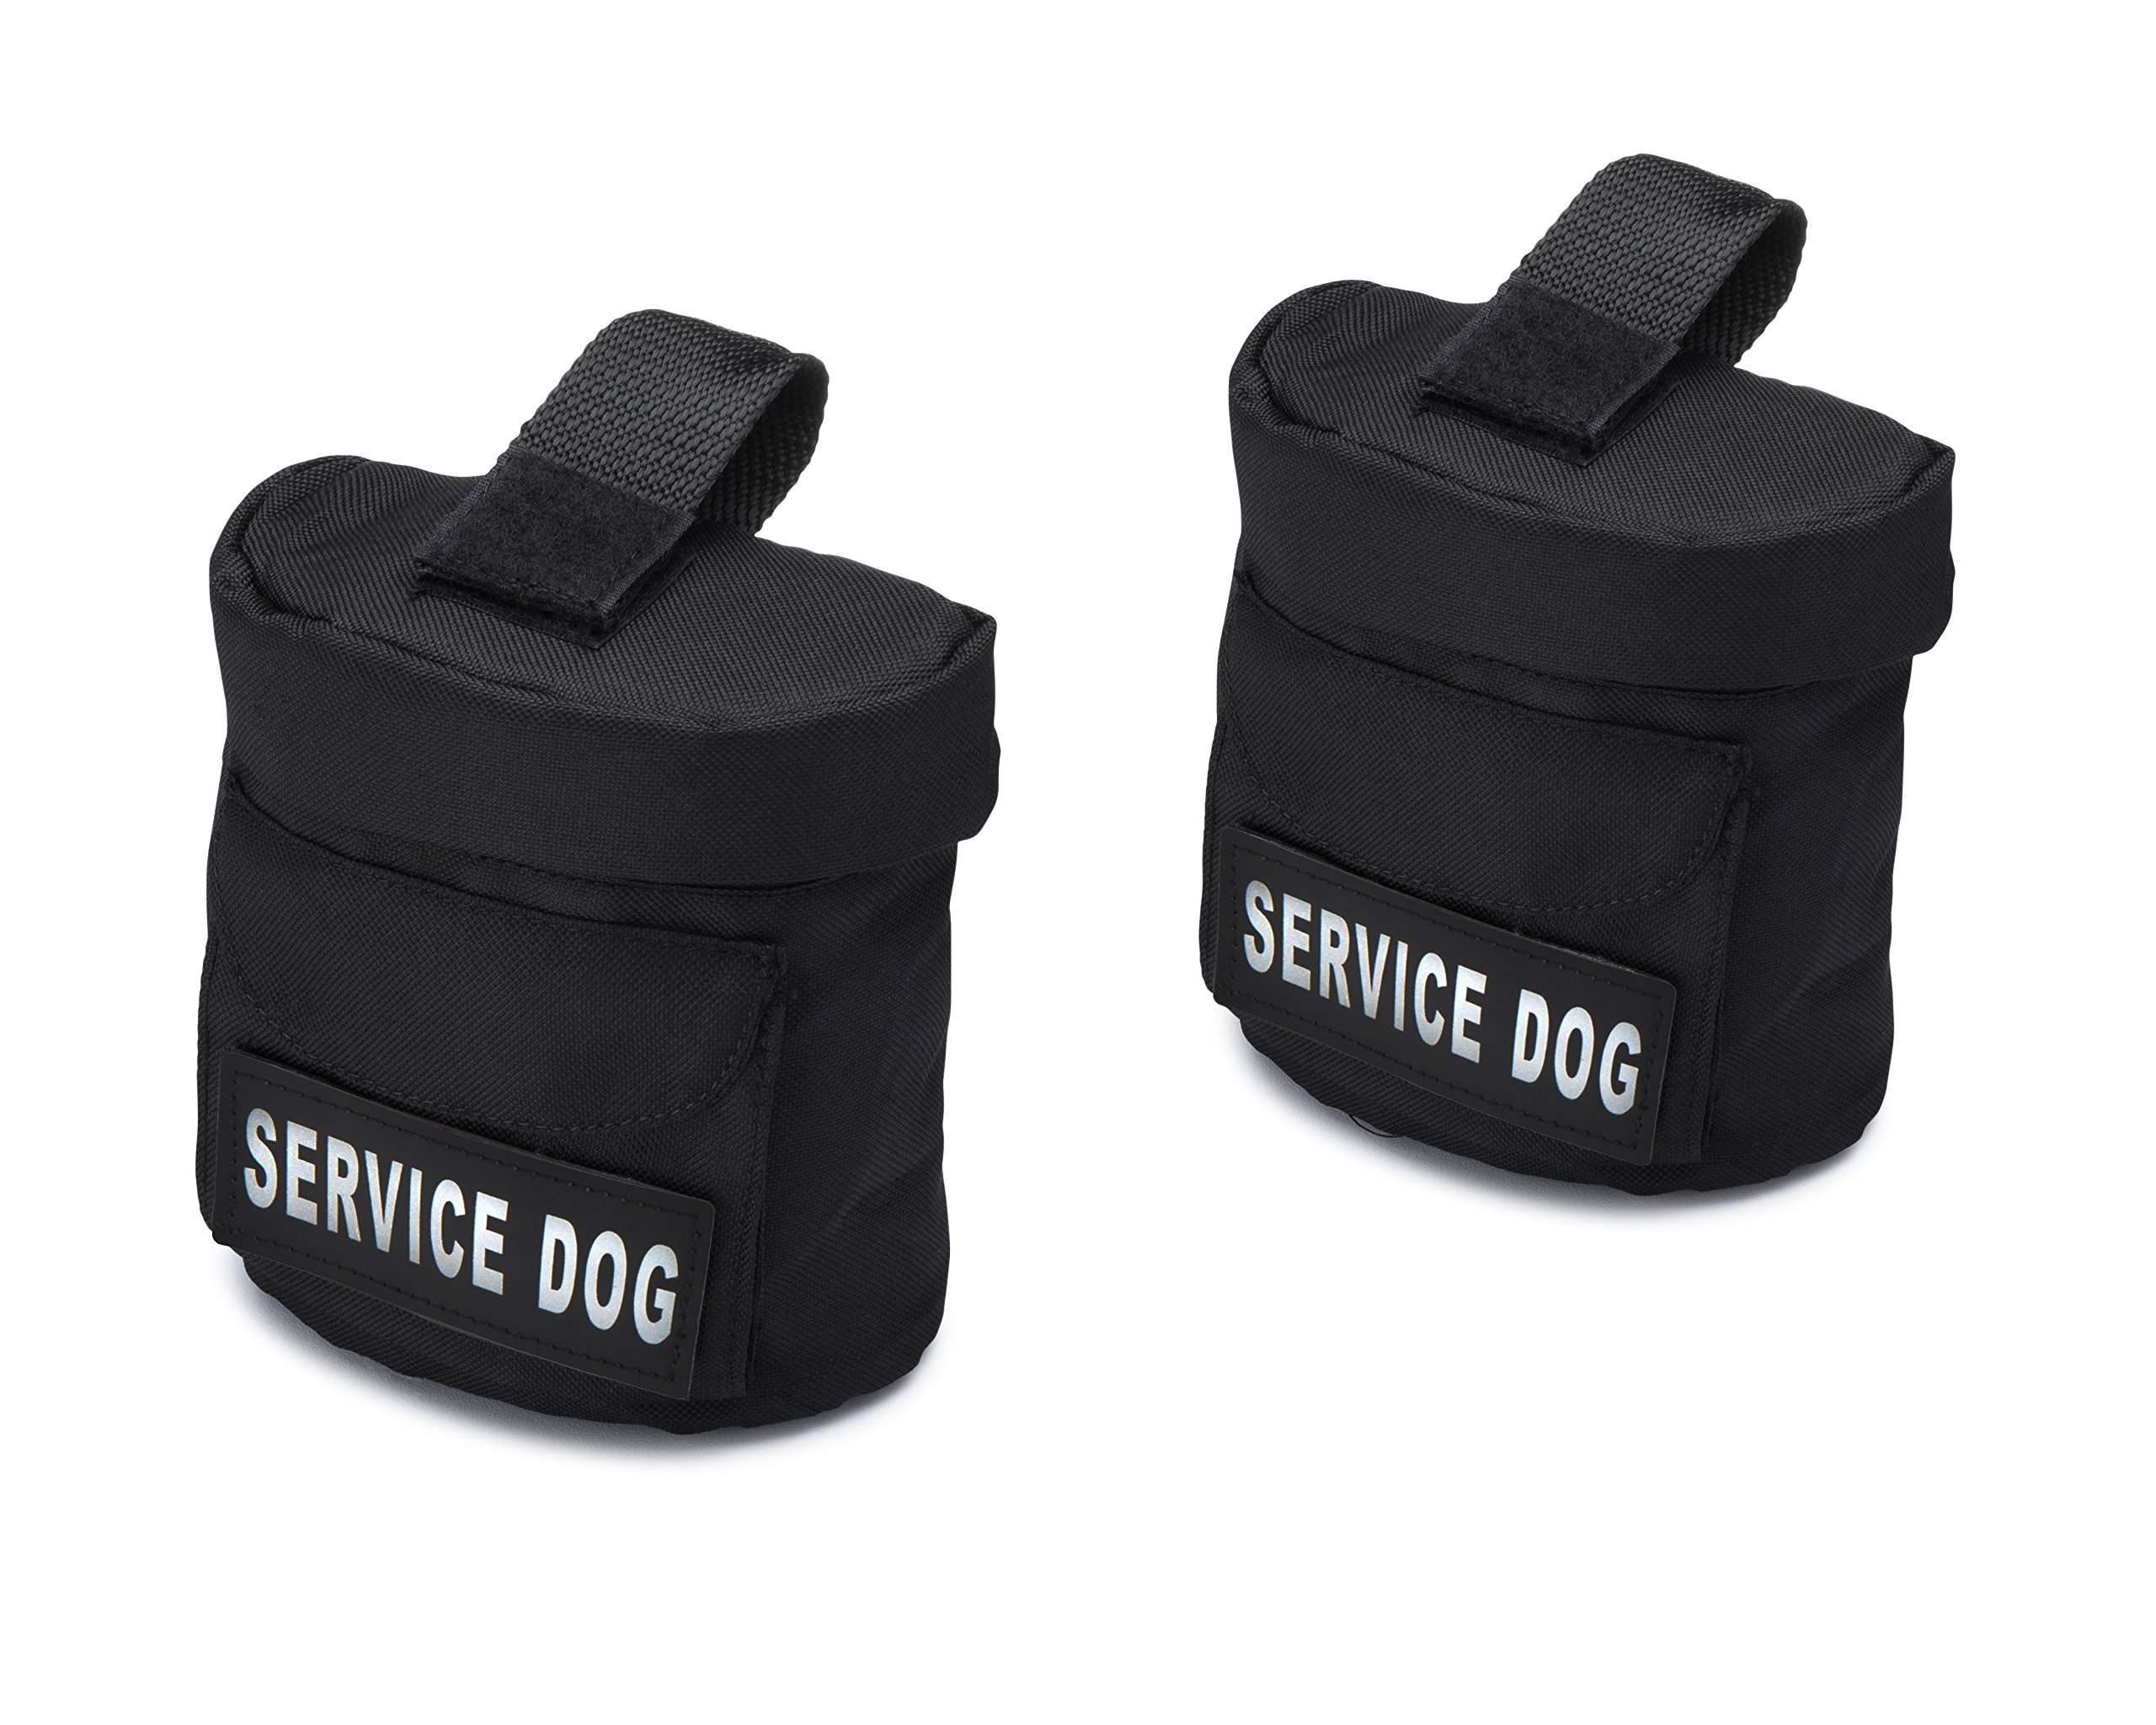 Industrial Puppy Service Dog Harness Saddle Bags with SERVICE DOG Hook Patches by